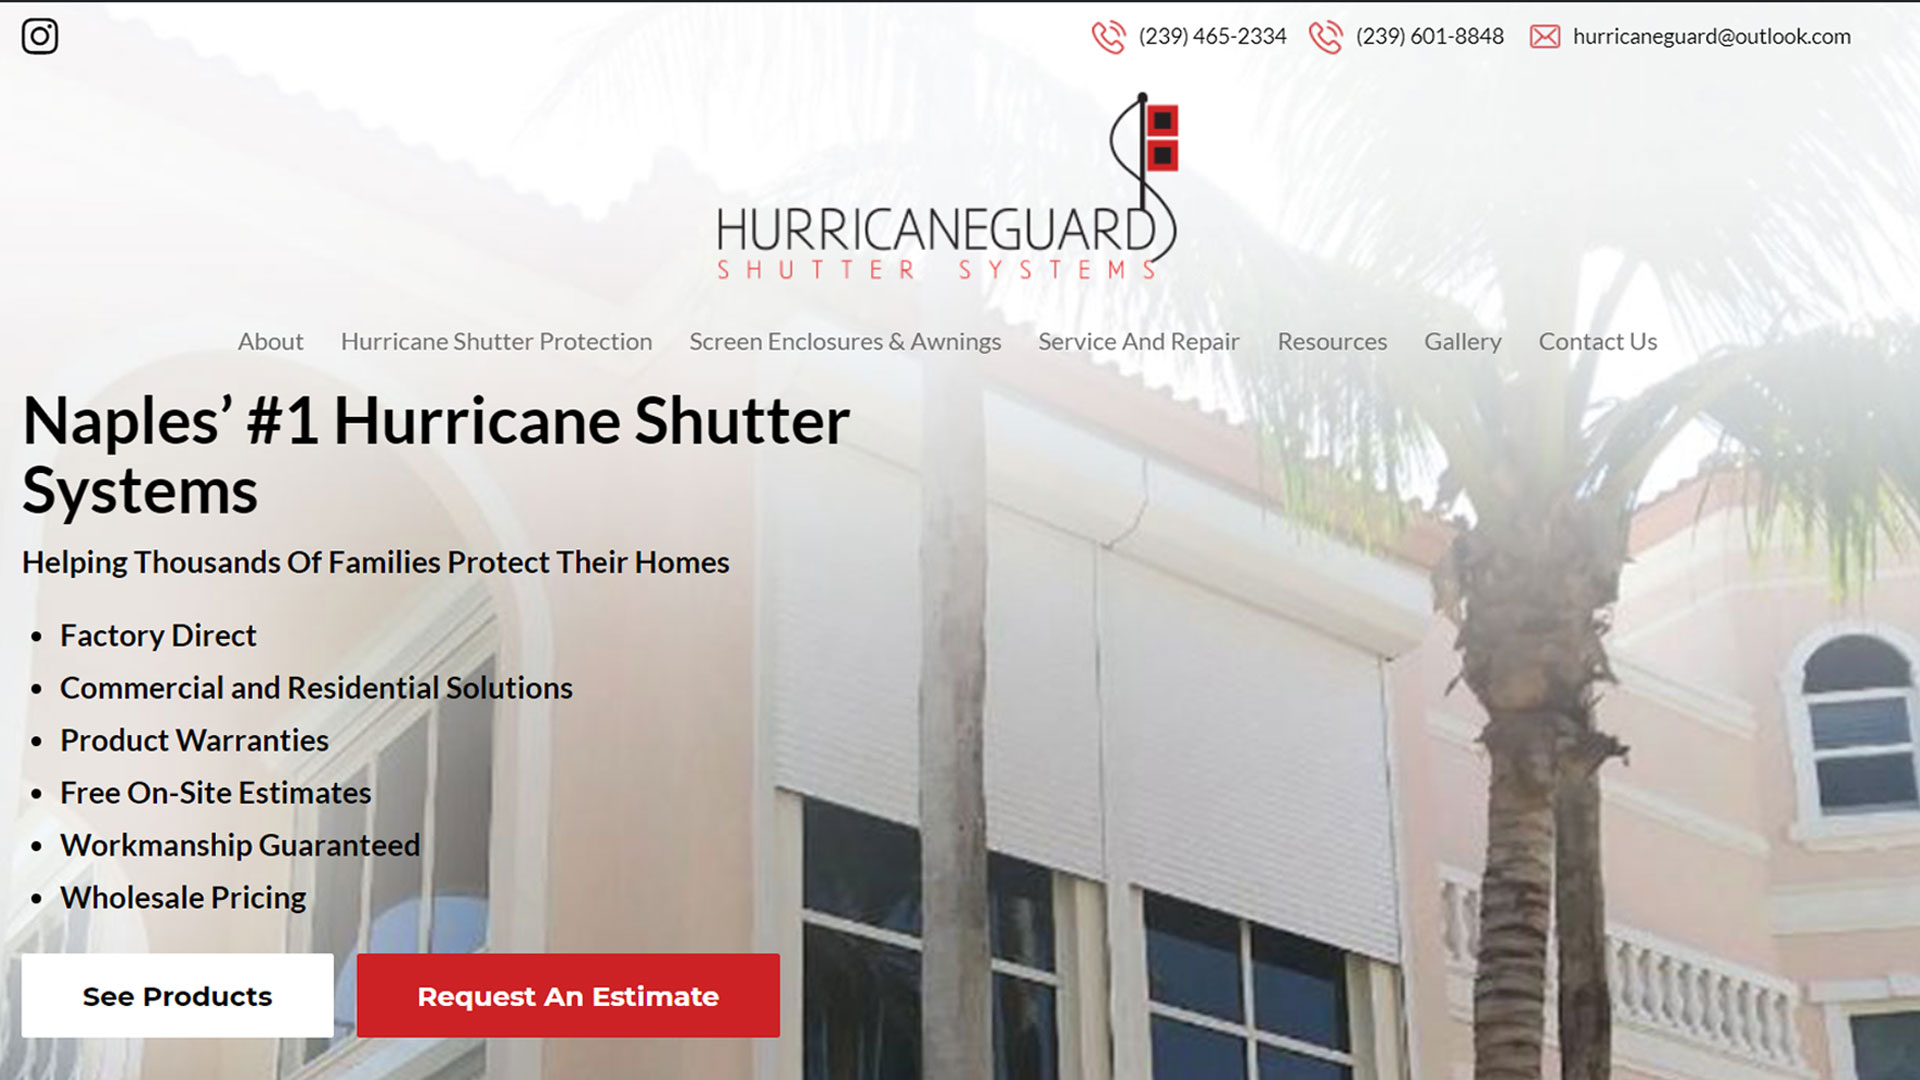 Hurricane Guard Shutter Systems Commercial And